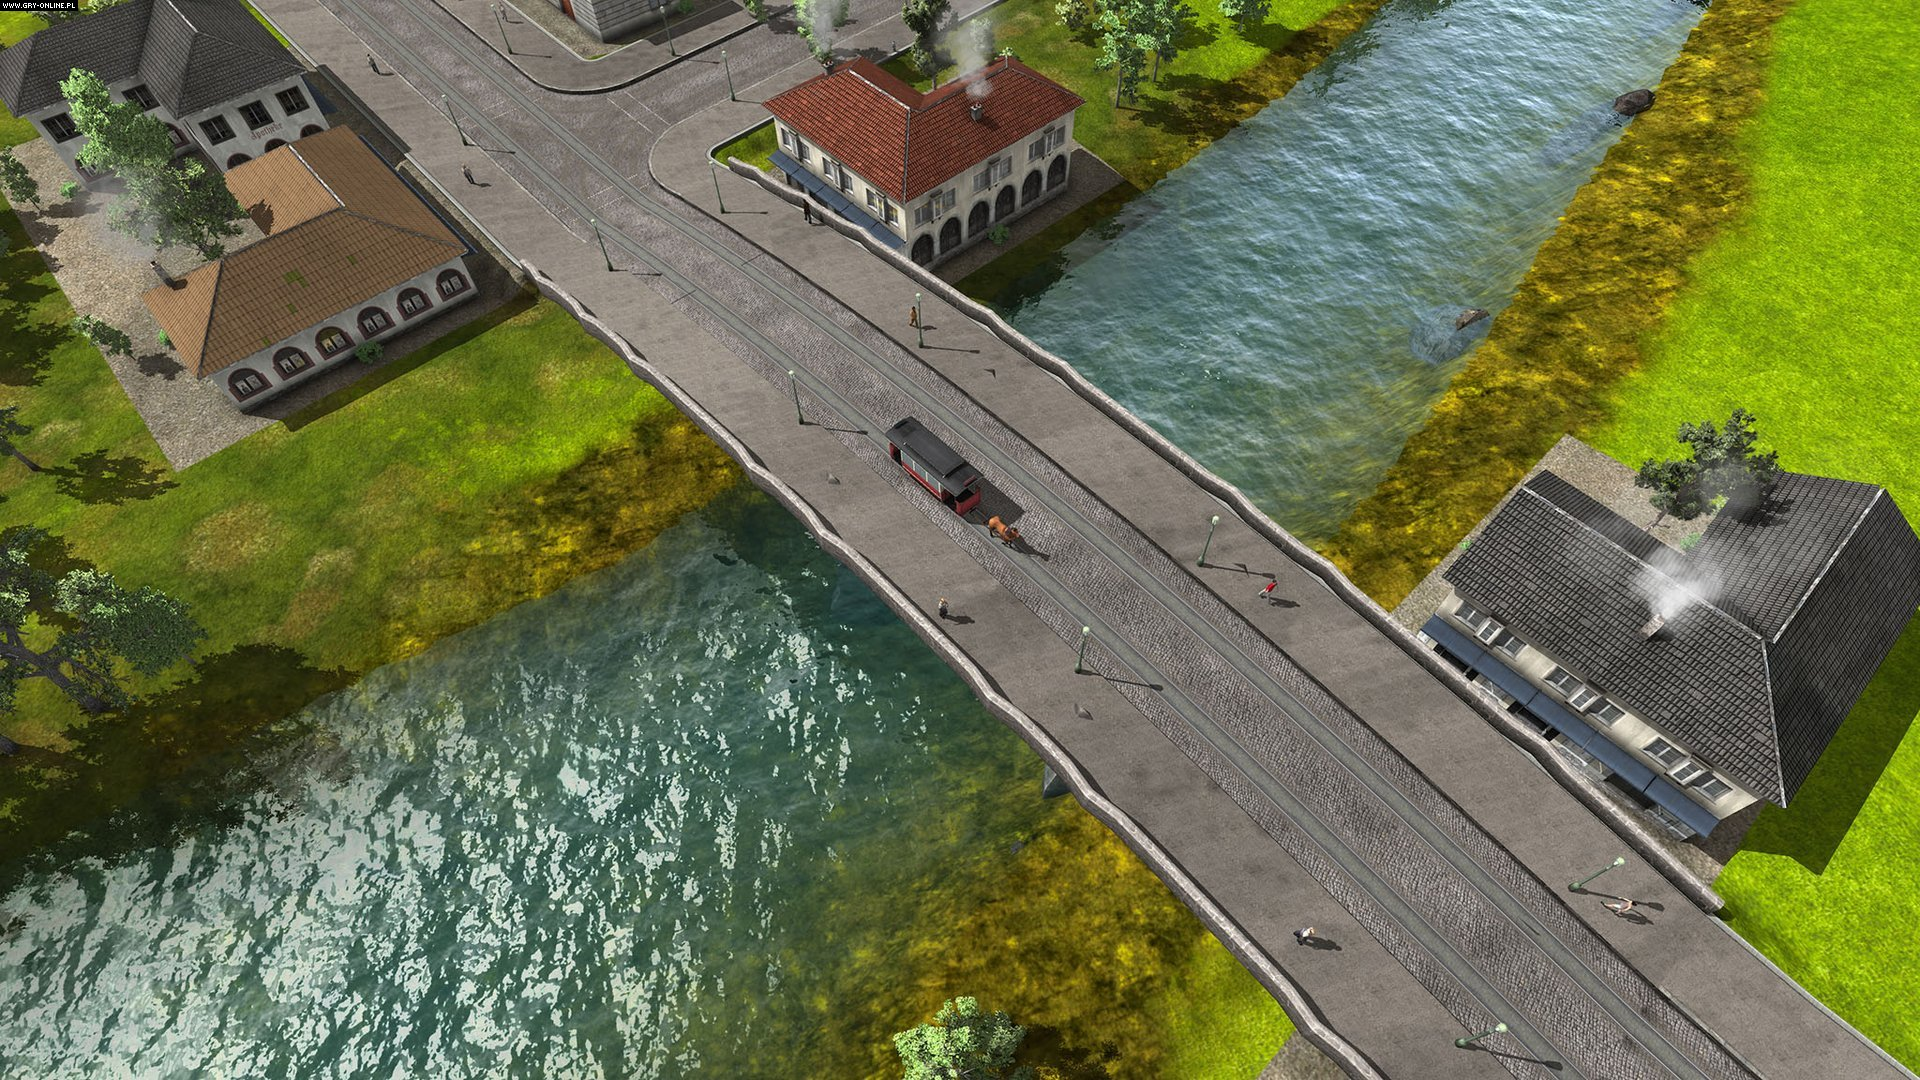 Train Fever PC Games Image 3/13, Urban Games, Good Shepherd Entertainment / Gambitious